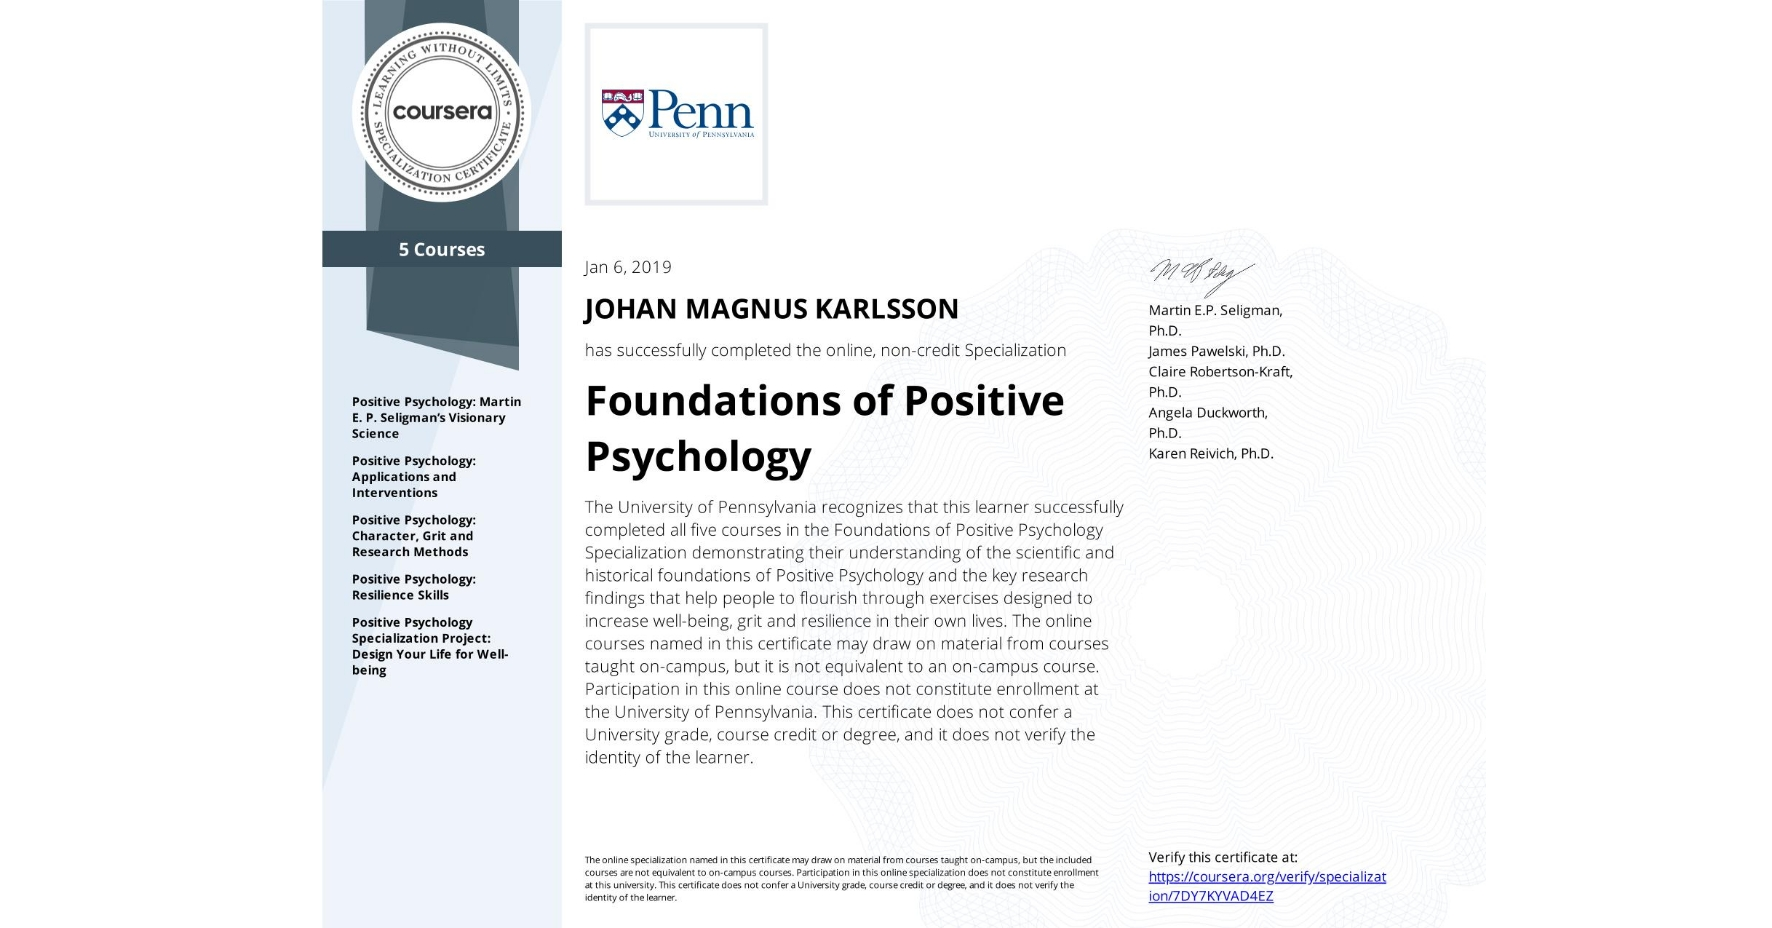 View certificate for JOHAN MAGNUS  KARLSSON, Foundations of Positive Psychology , offered through Coursera. The University of Pennsylvania recognizes that this learner successfully completed all five courses in the Foundations of Positive Psychology Specialization demonstrating their understanding of the scientific and historical foundations of Positive Psychology and the key research findings that help people to flourish through exercises designed to increase well-being, grit and resilience in their own lives. The online courses named in this certificate may draw on material from courses taught on-campus, but it is not equivalent to an on-campus course.  Participation in this online course does not constitute enrollment at the University of Pennsylvania. This certificate does not confer a University grade, course credit or degree, and it does not verify the identity of the learner.